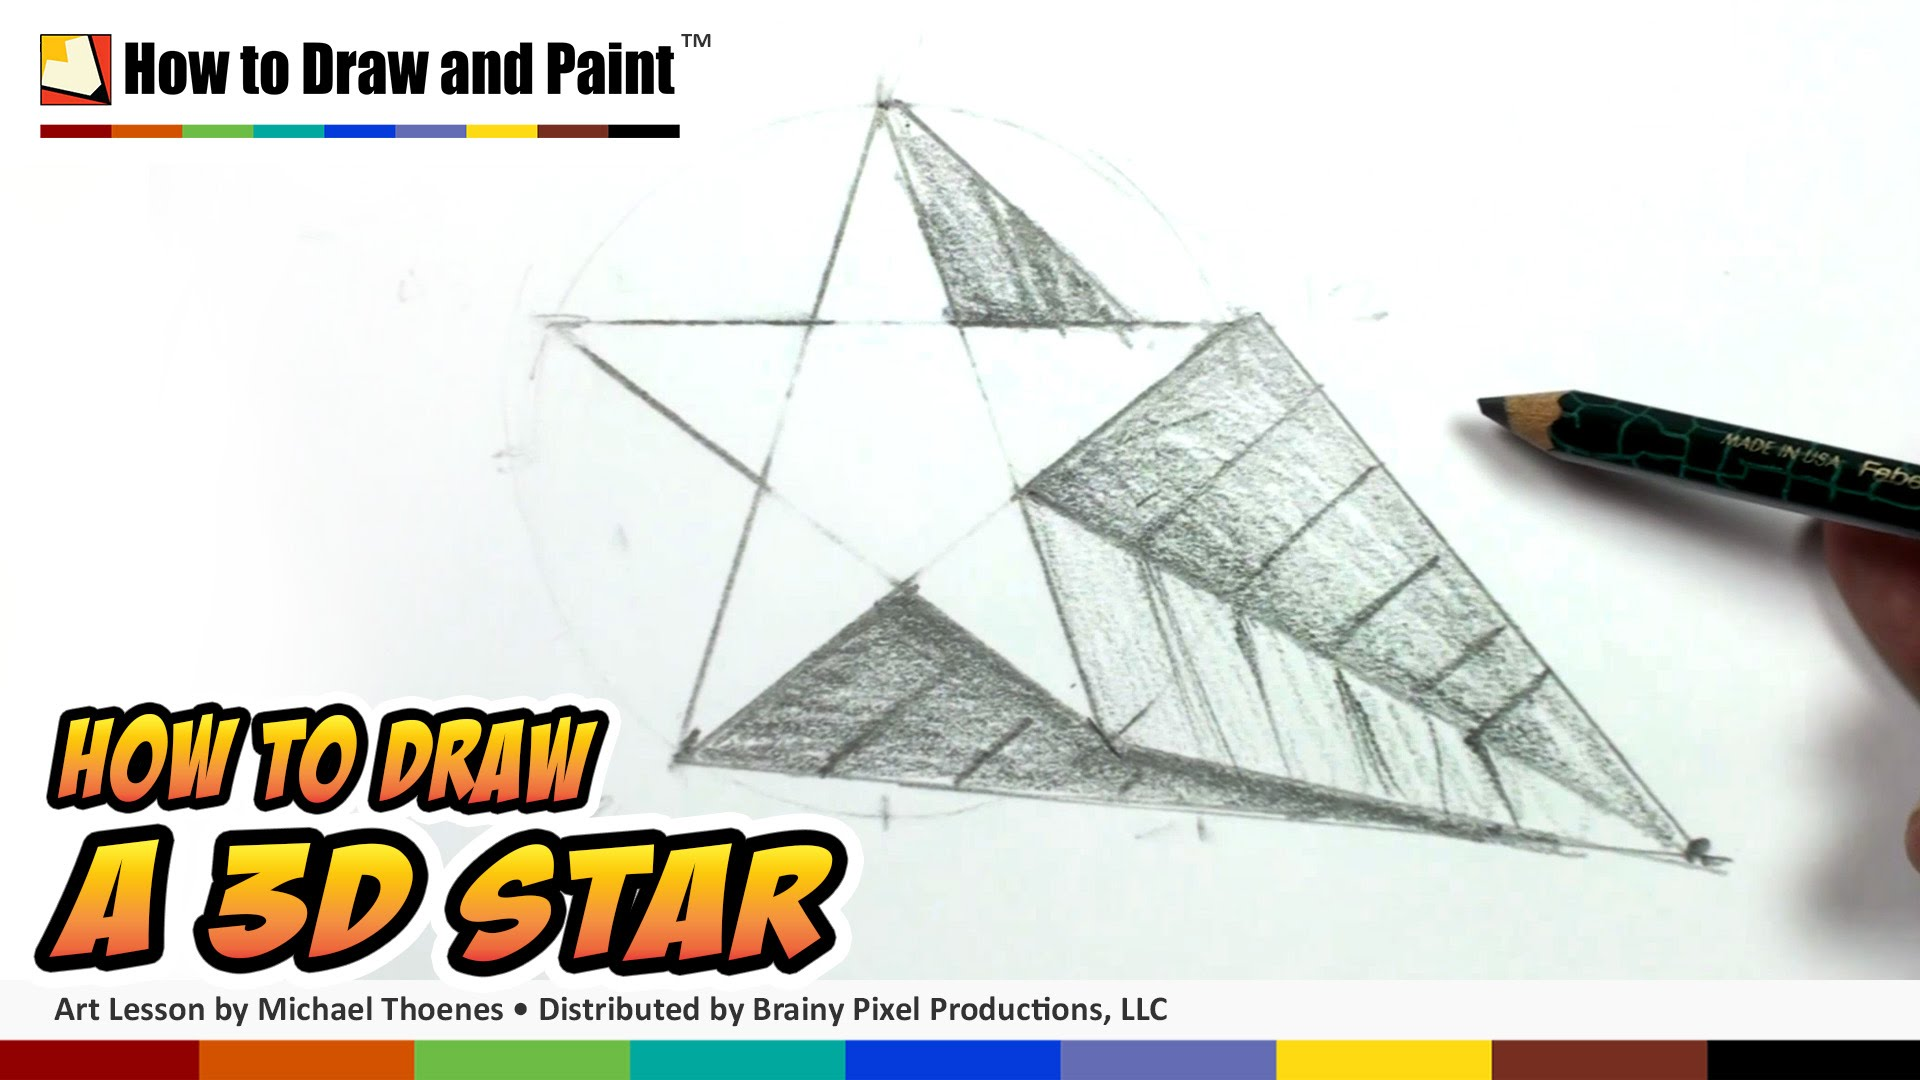 Drawn stare shaded Shape 3D Kids How Star